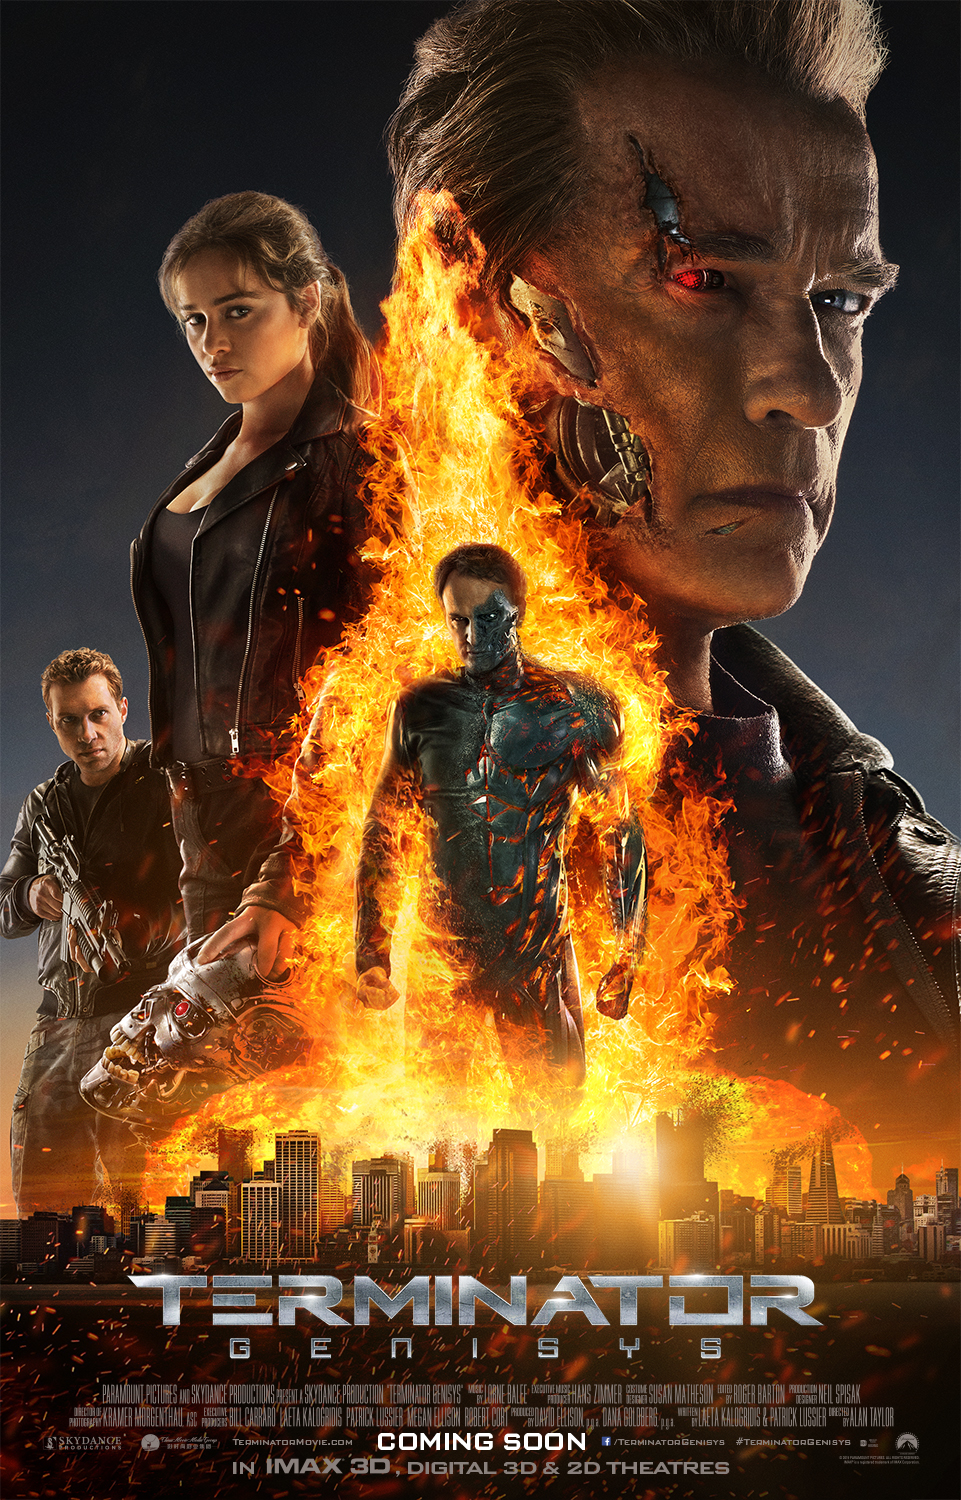 Terminator Genisys in 3D 2015 Full Length Movie